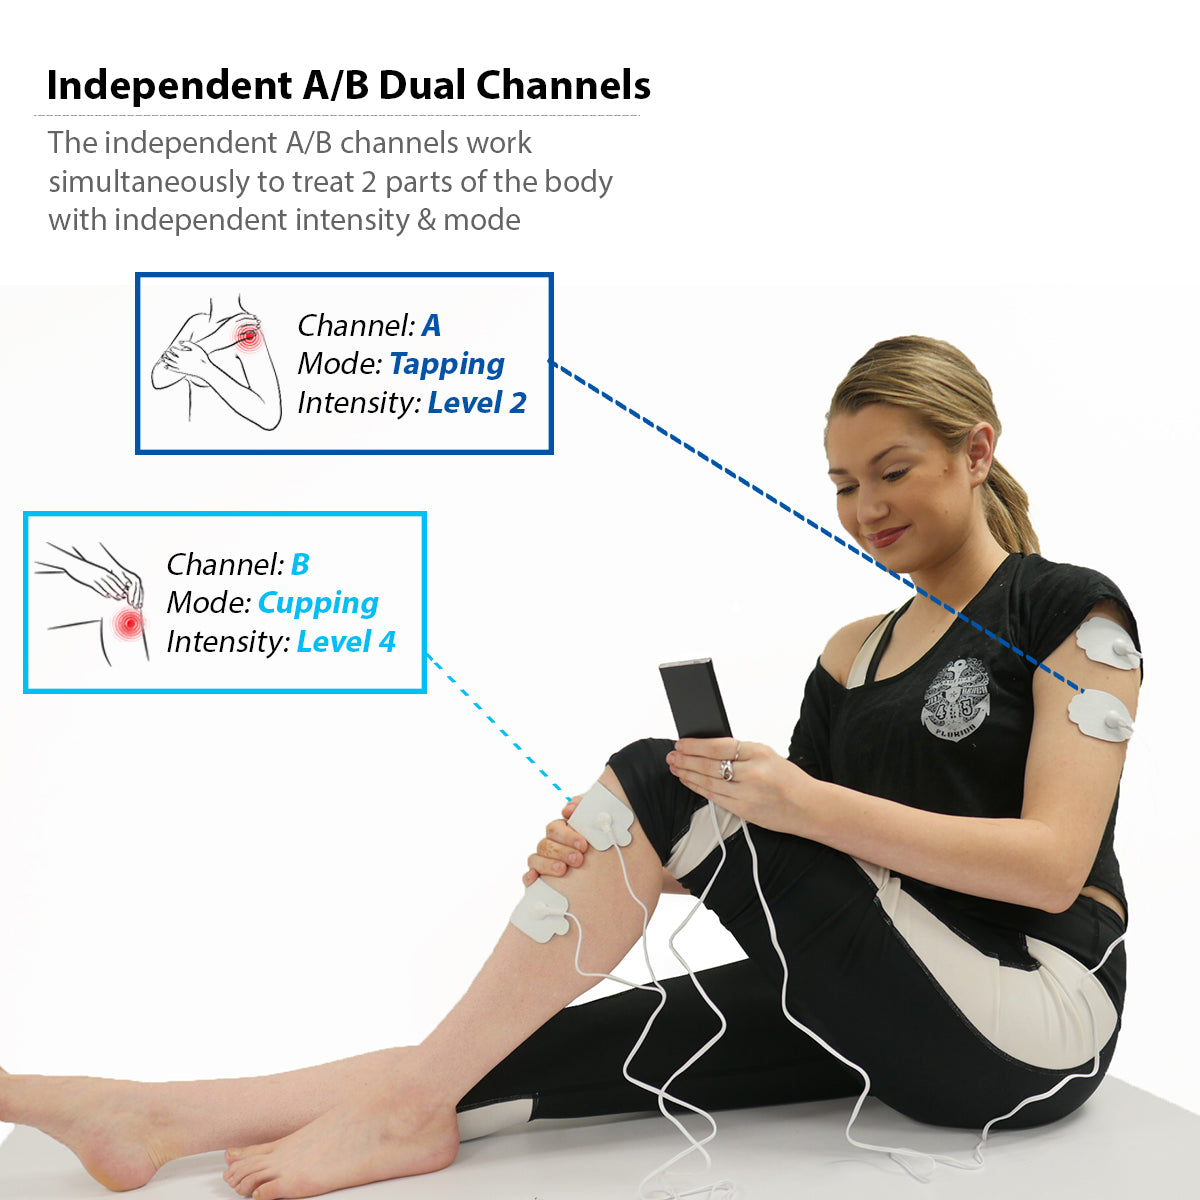 Free Massage Belt + PRO12ABQ Portable Palm Size Electronic Pulse Pain Relief TENS UNIT - HealthmateForever